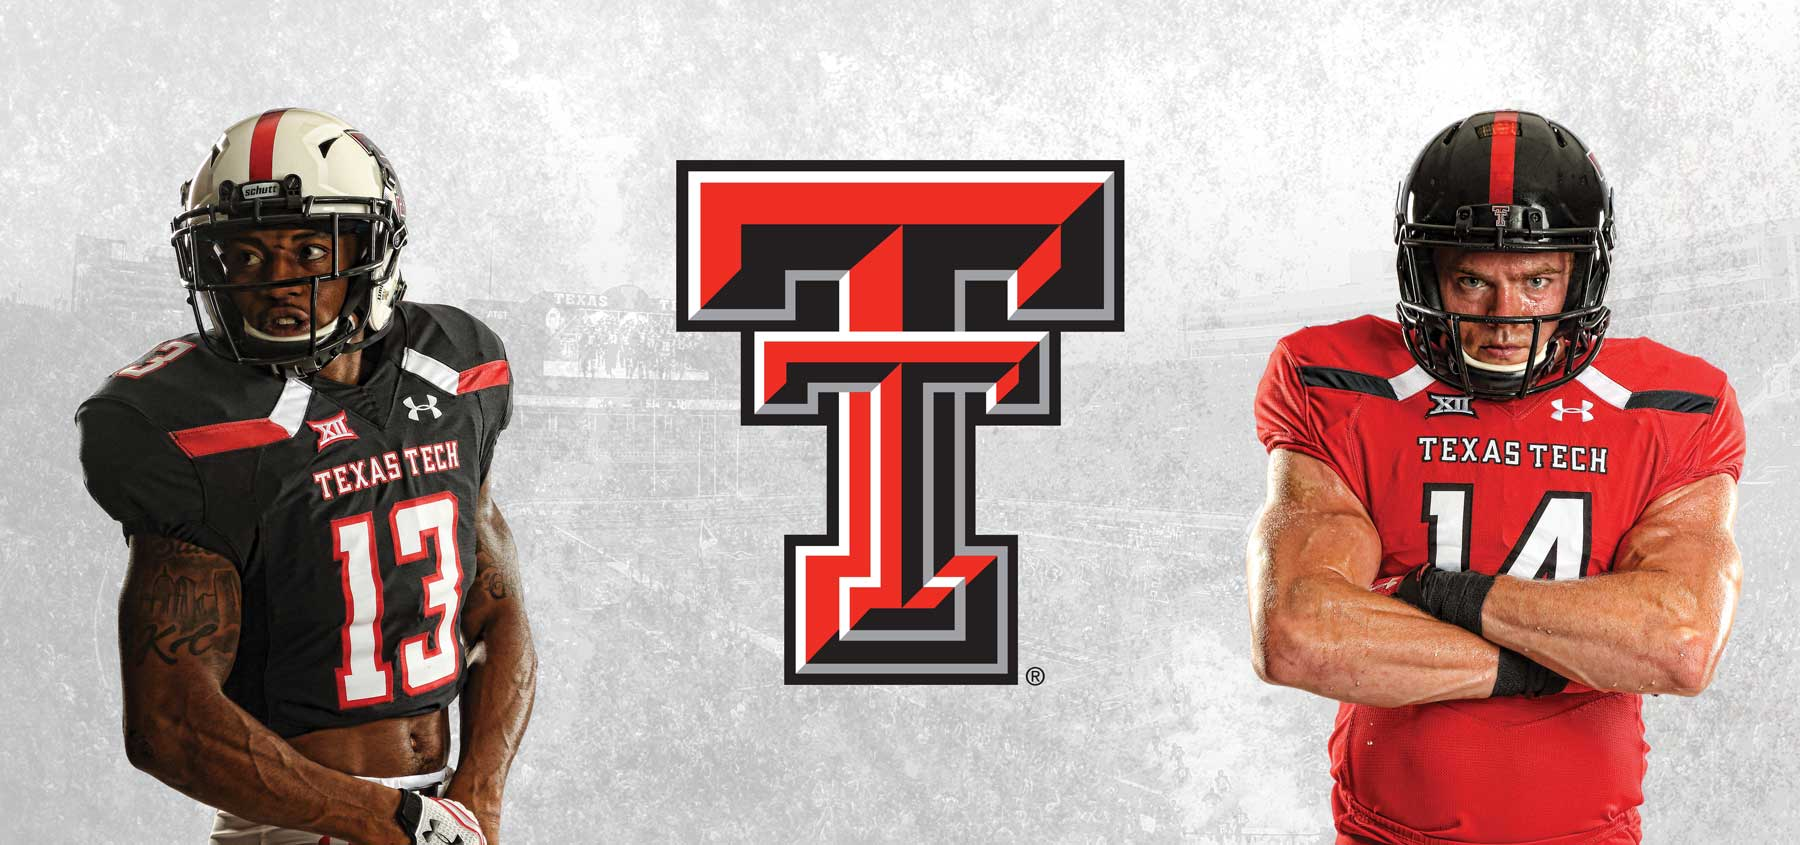 The Texas Tech logo and players